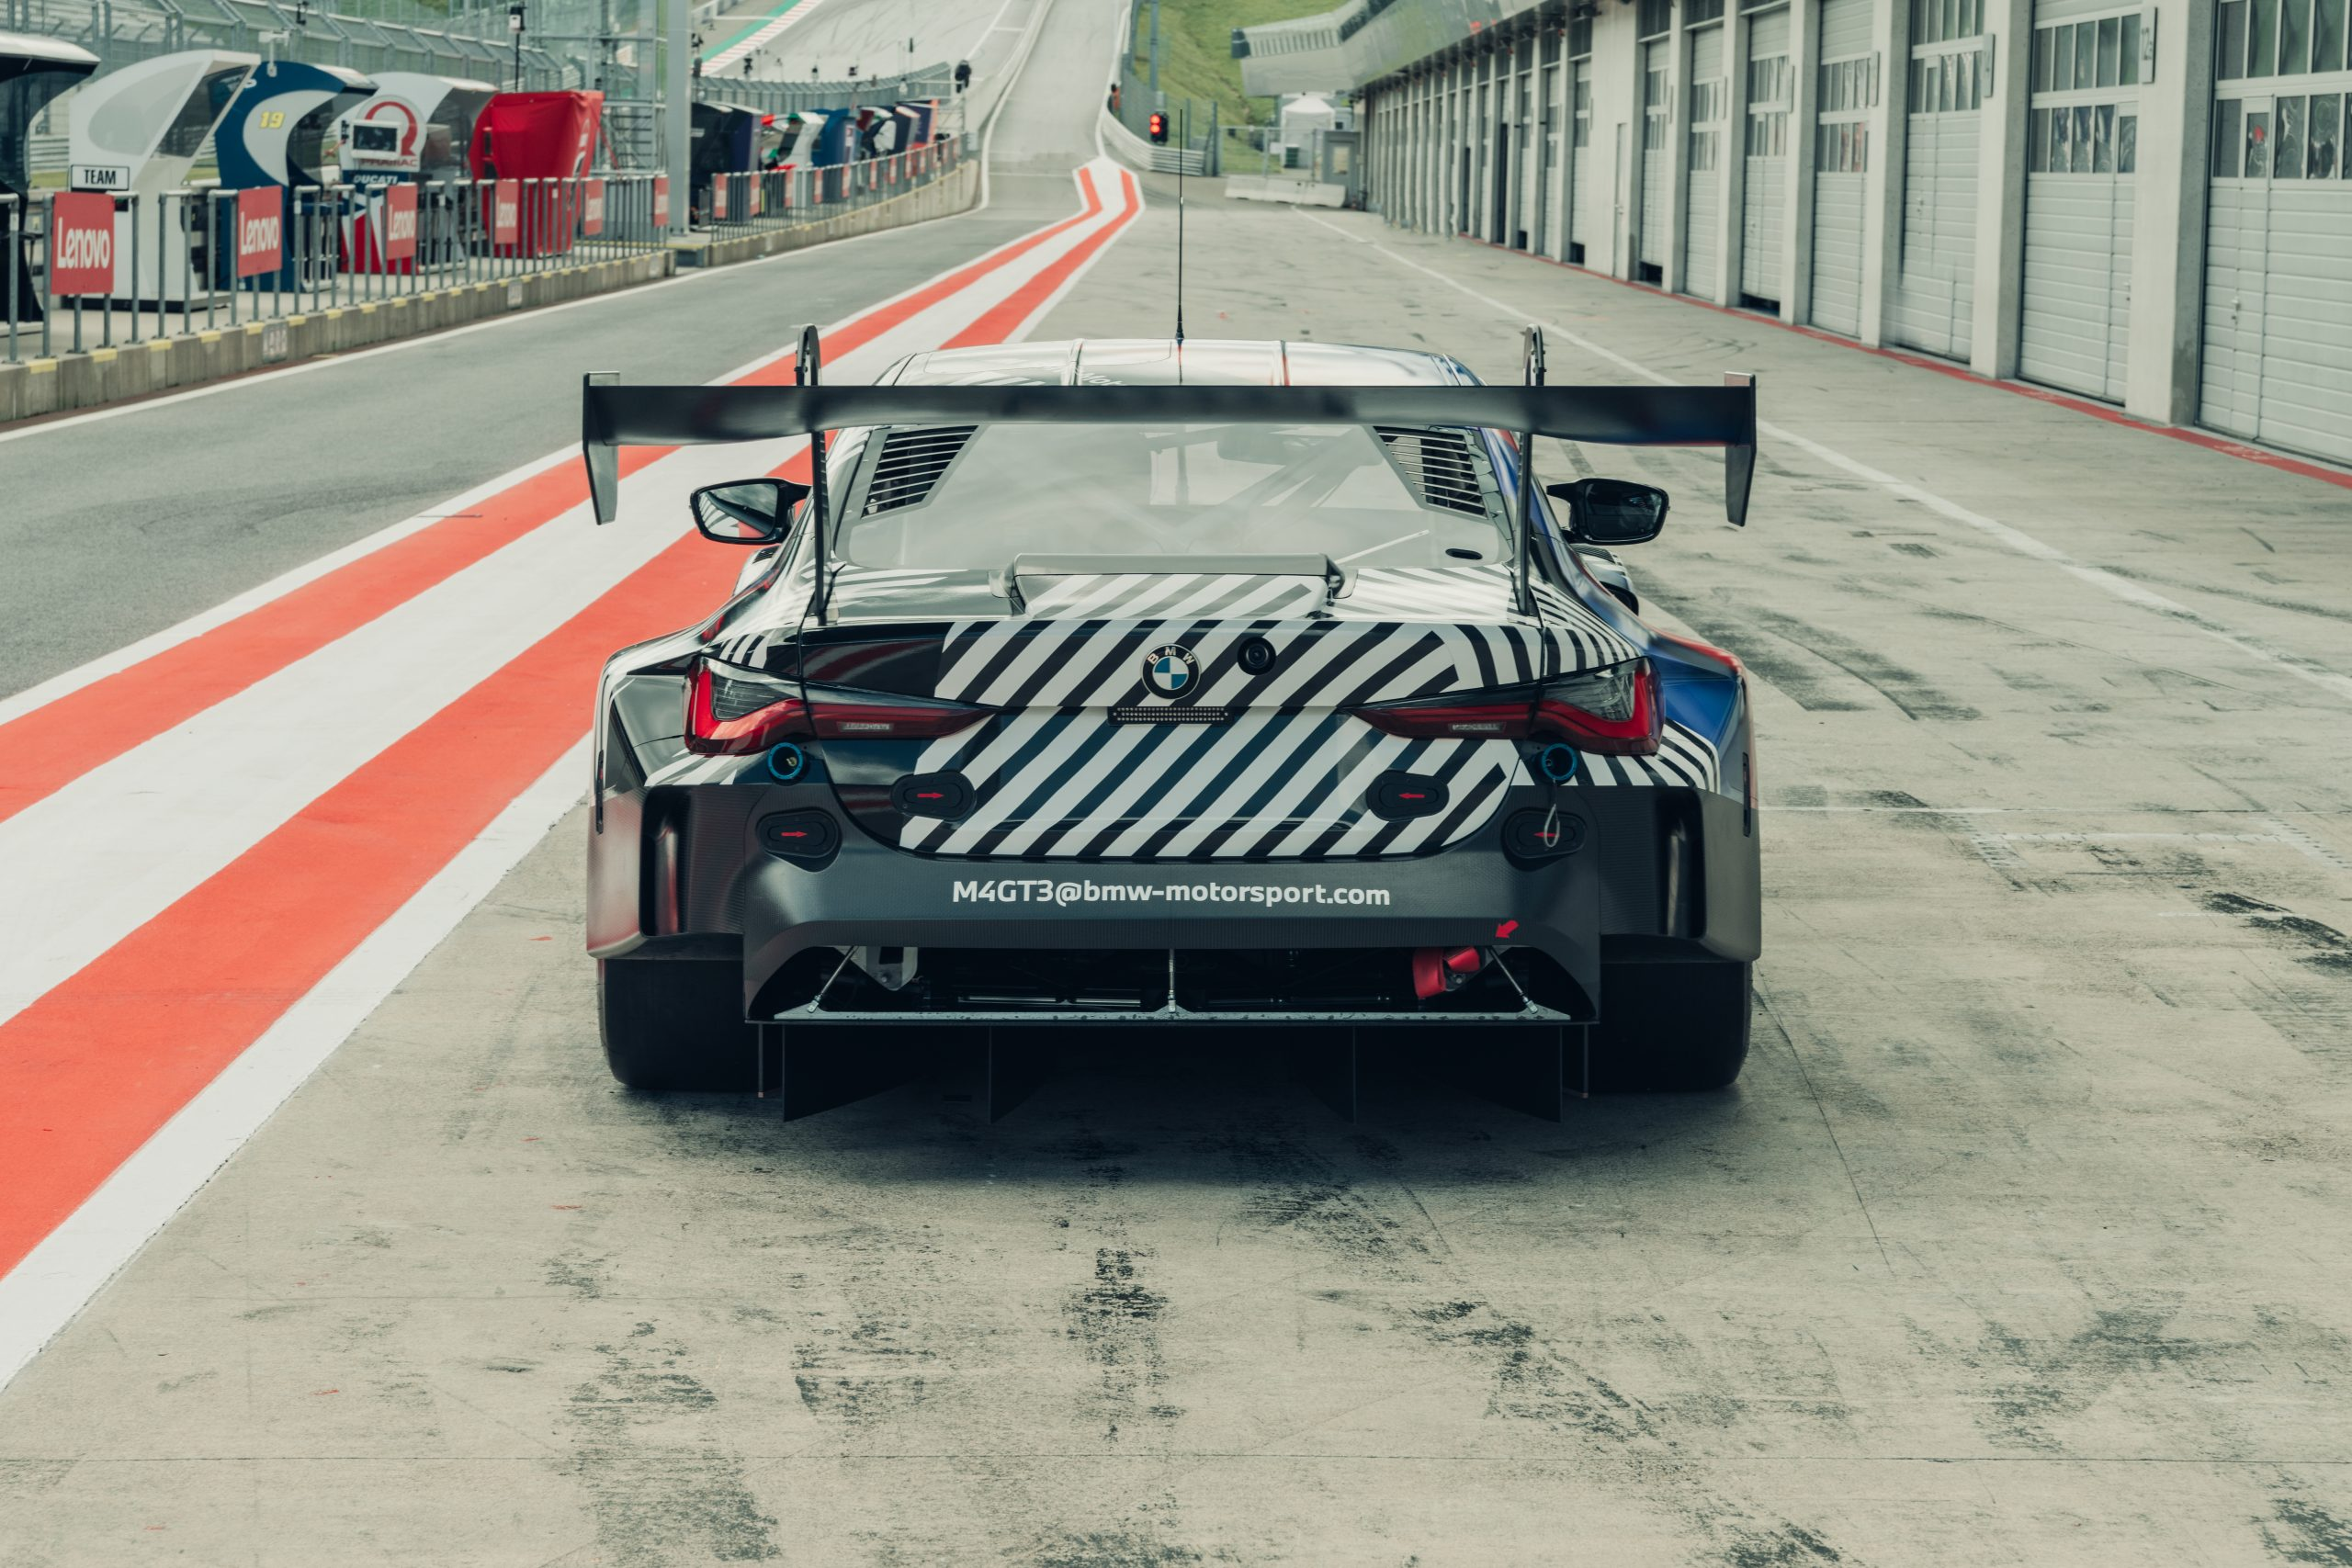 2021 BMW M4 GT3 prototype rear wing Red Bull Ring August 2020